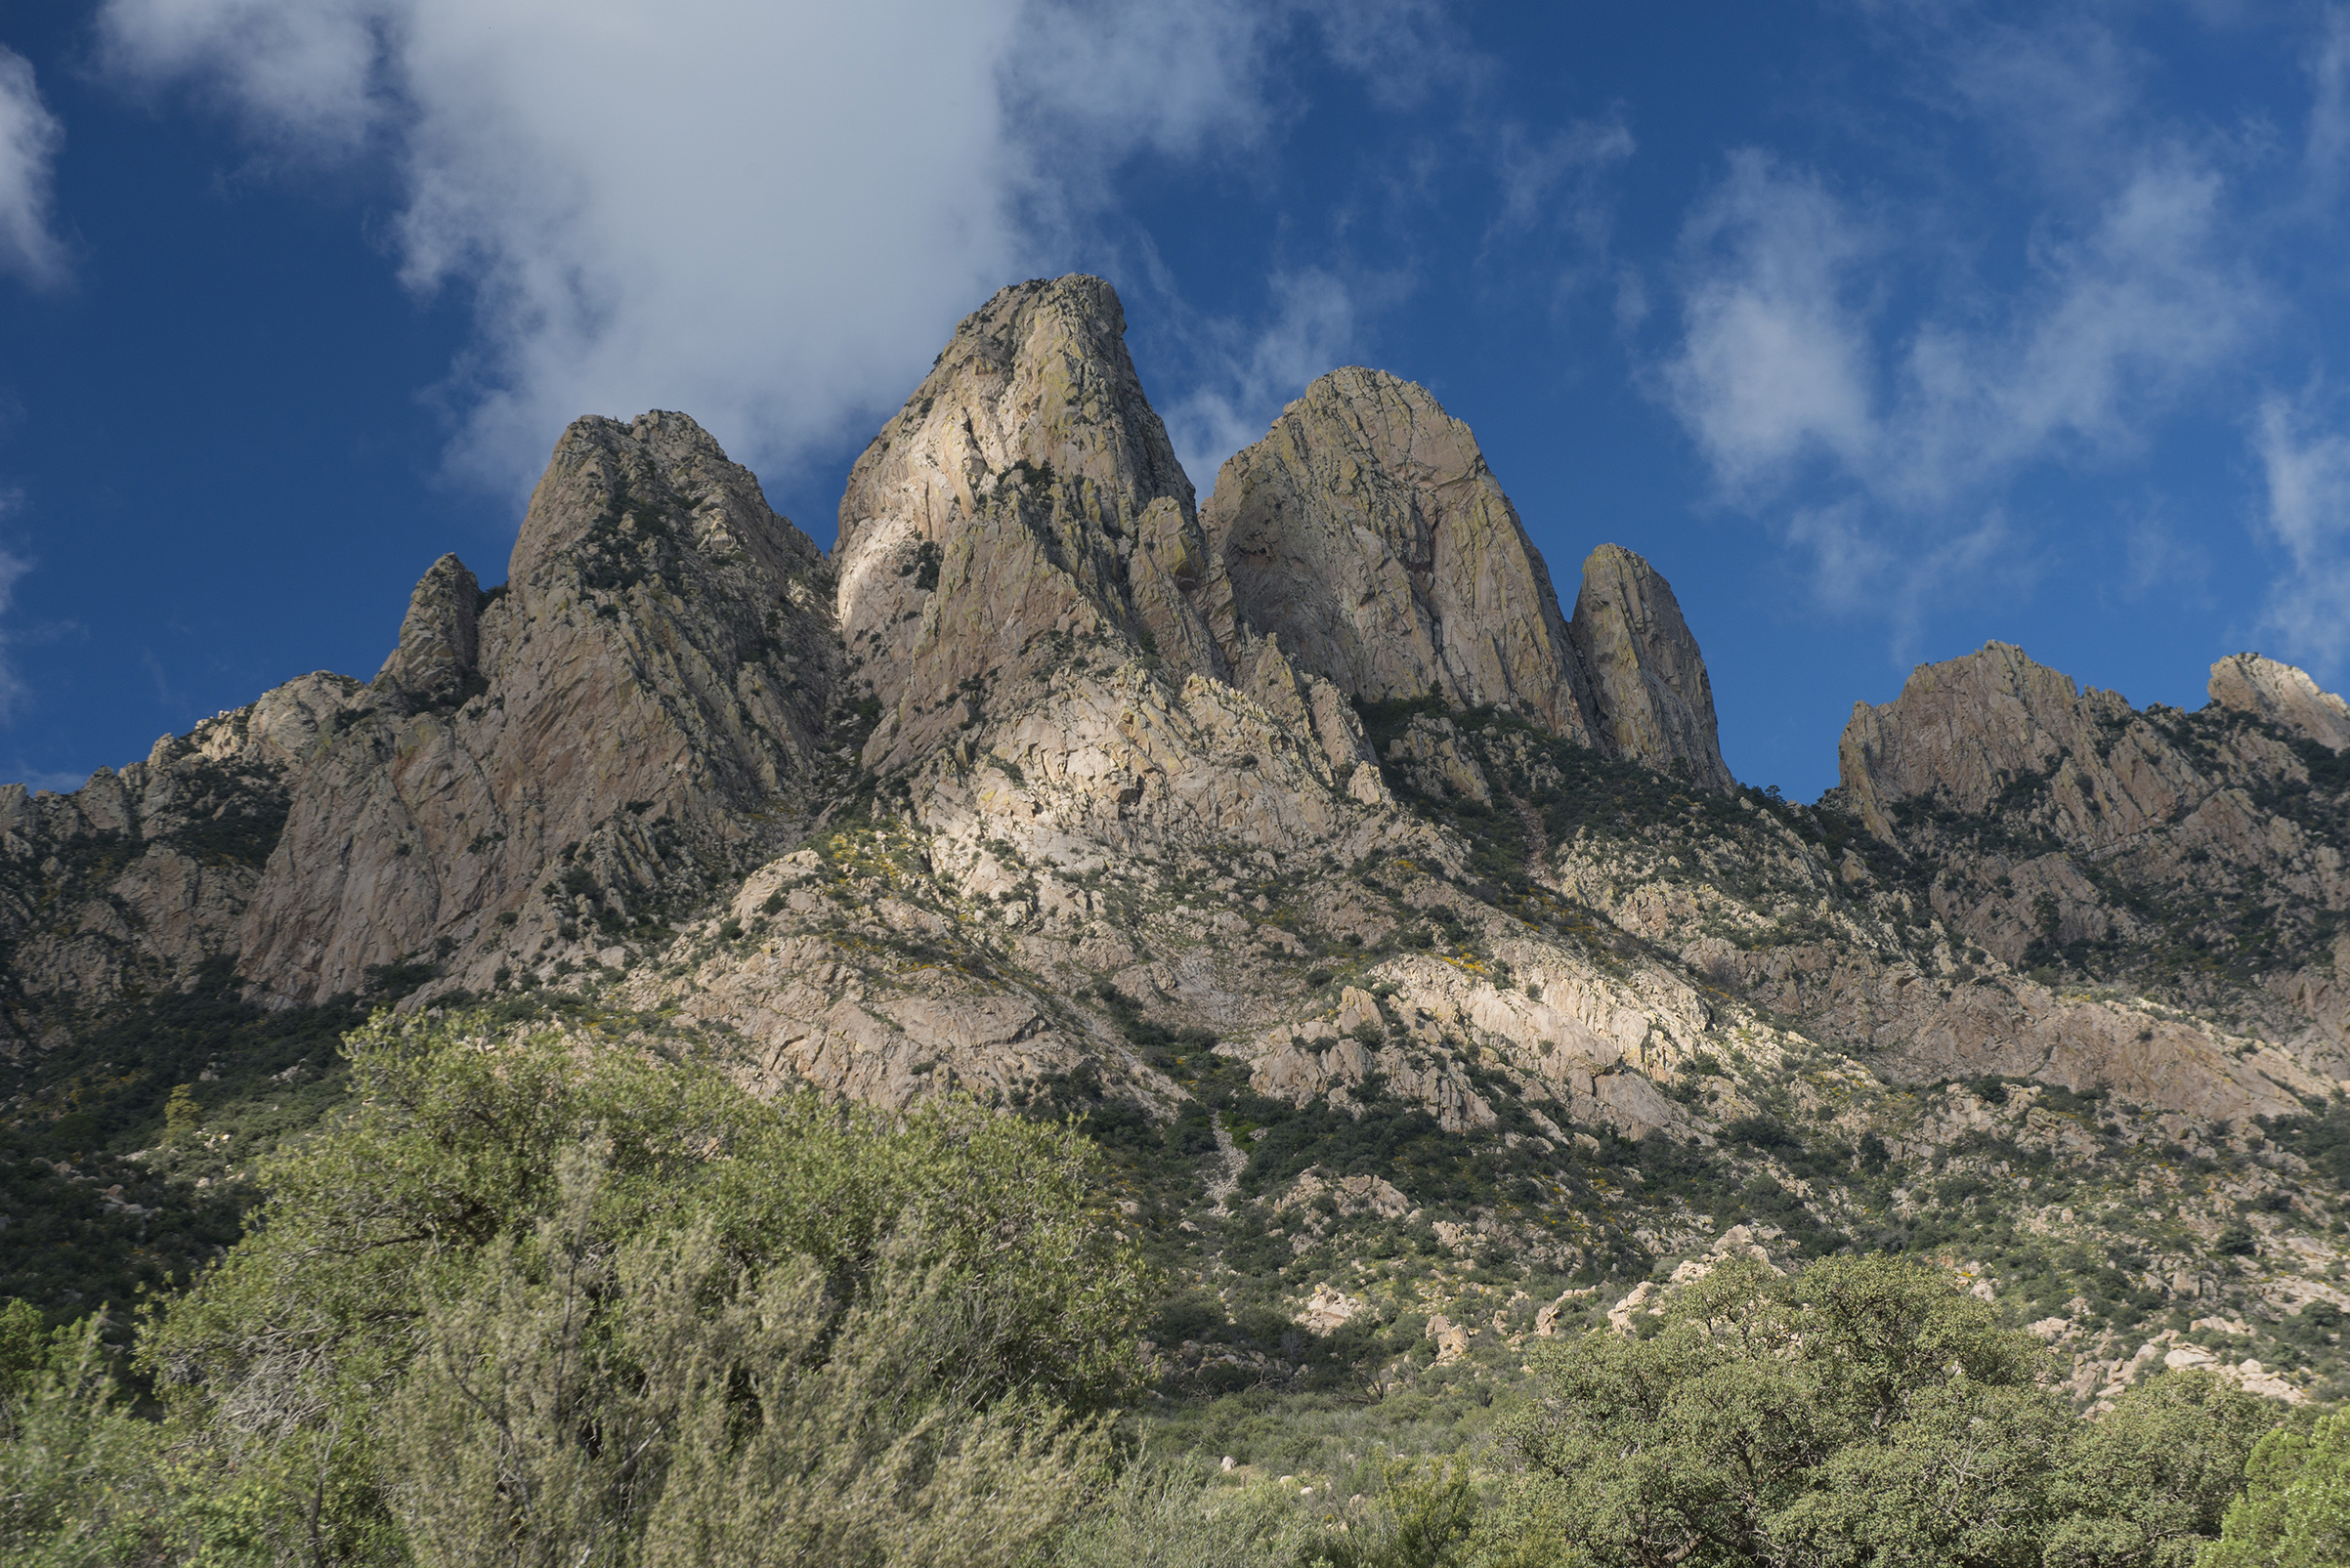 Organ Mountains-Desert Peaks National Monument, Oct. 10, 2014.